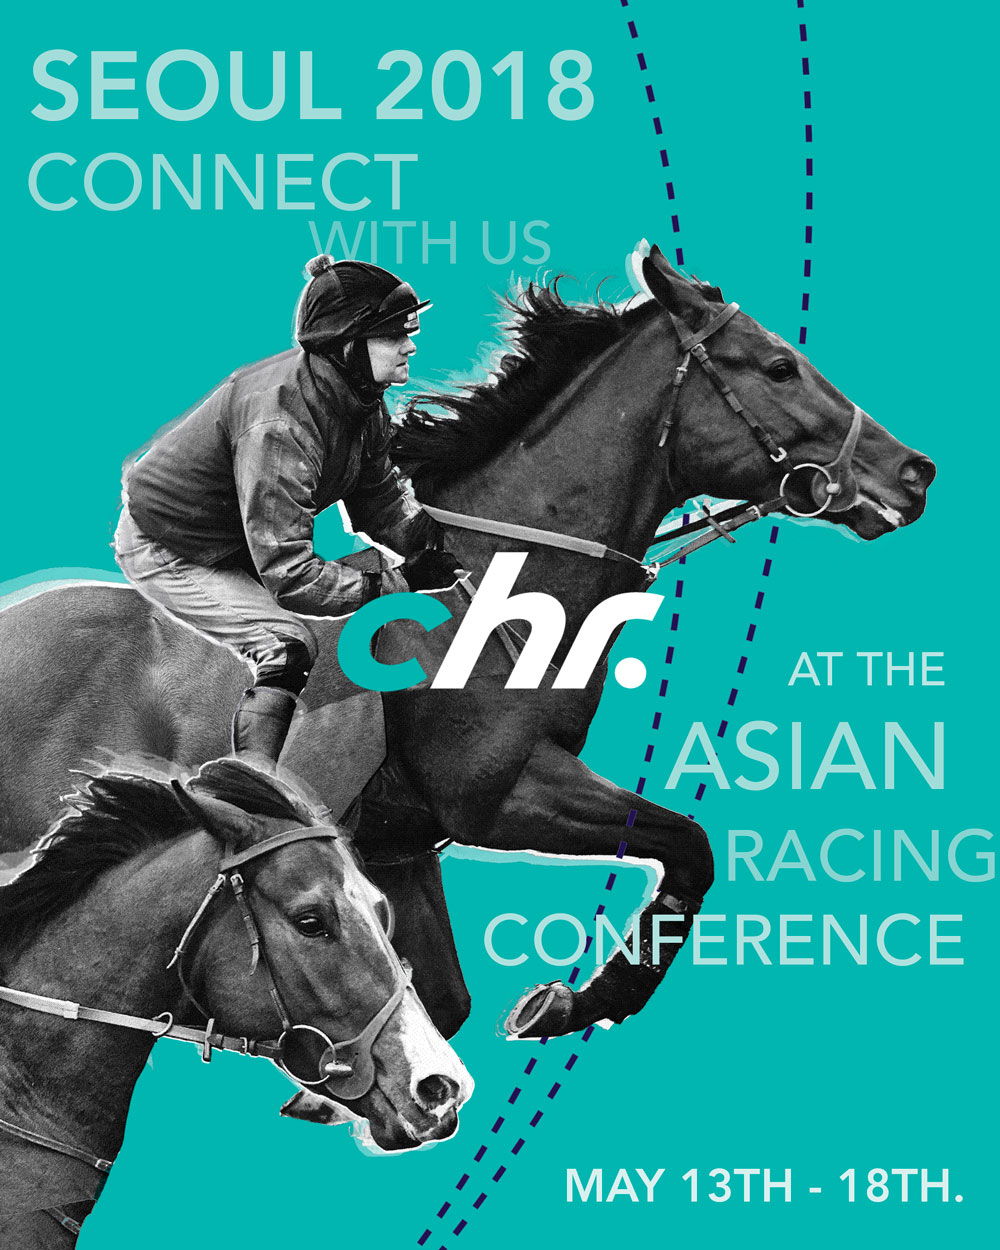 37th Asian Racing Conference, Seoul